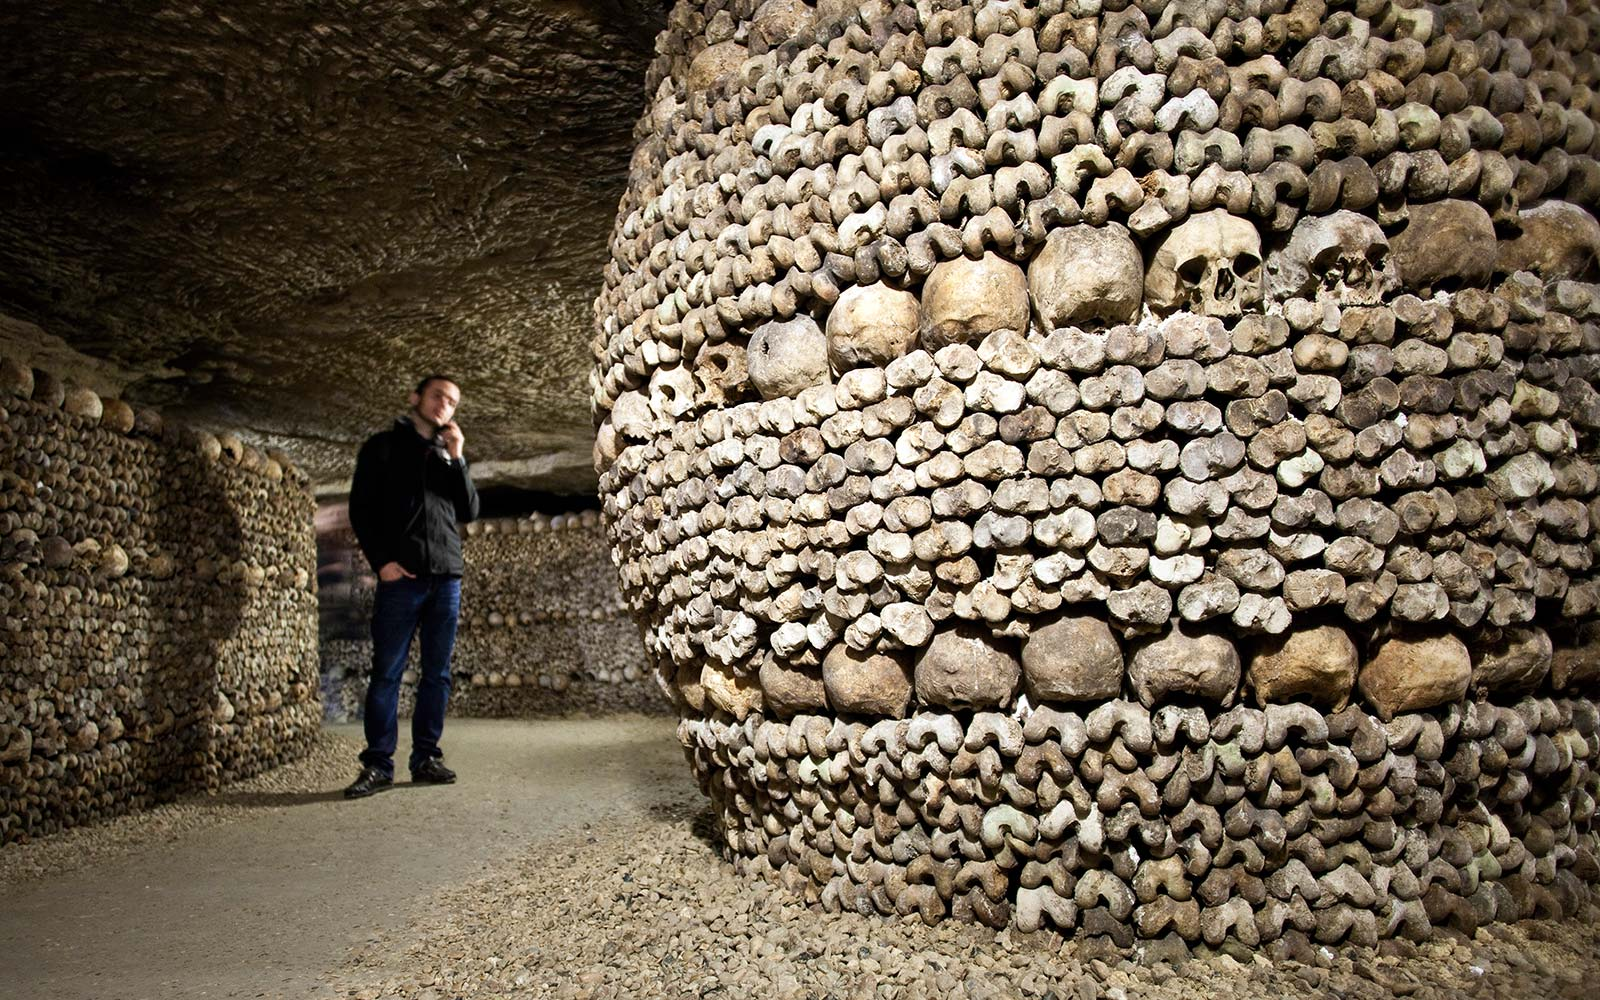 image 10 Scariest Places To Visit. No. 4 Will Make You Want To kill Yourself.